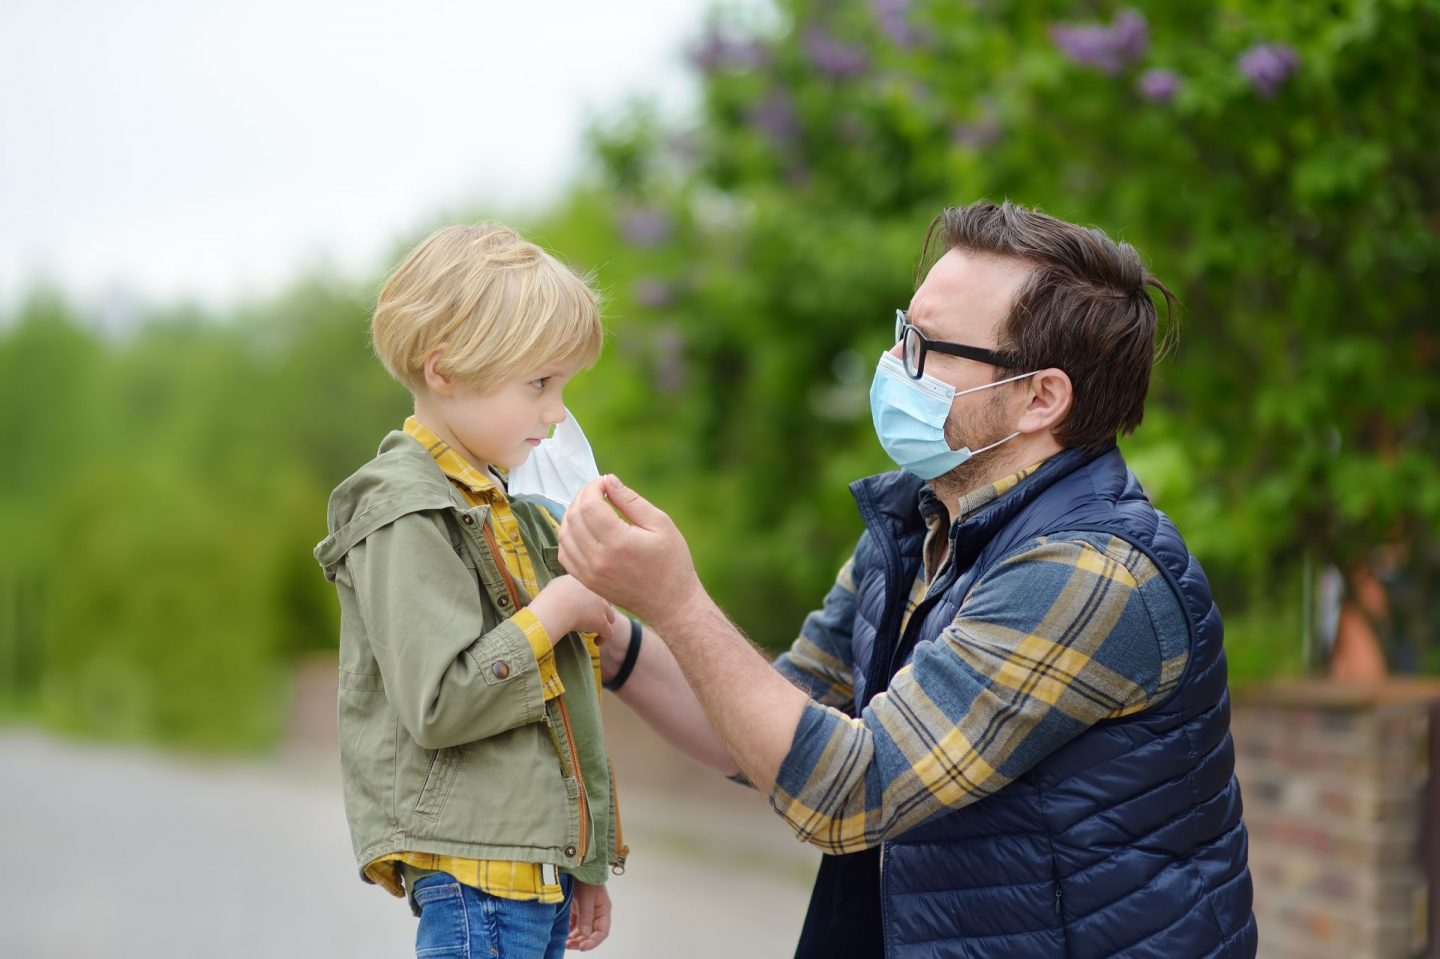 The COVID-19 generation are not snowflakes. Picture of man putting face mask on a child.